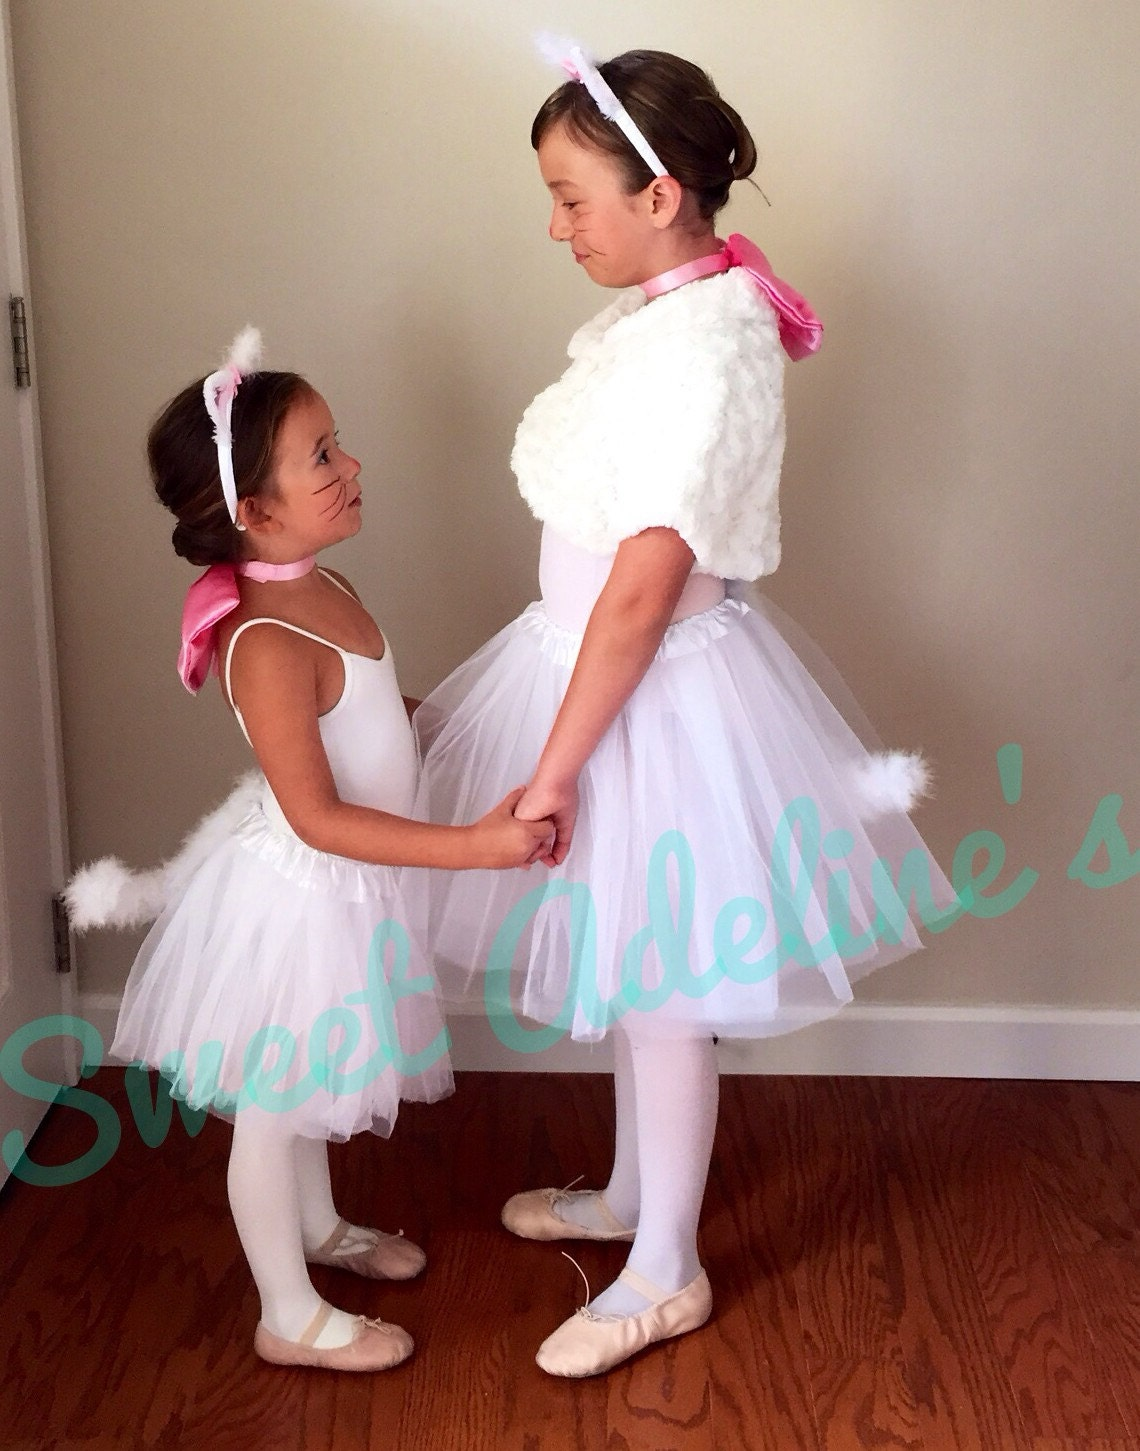 aristocats marie tutu costume with fluffy posable tail. Black Bedroom Furniture Sets. Home Design Ideas